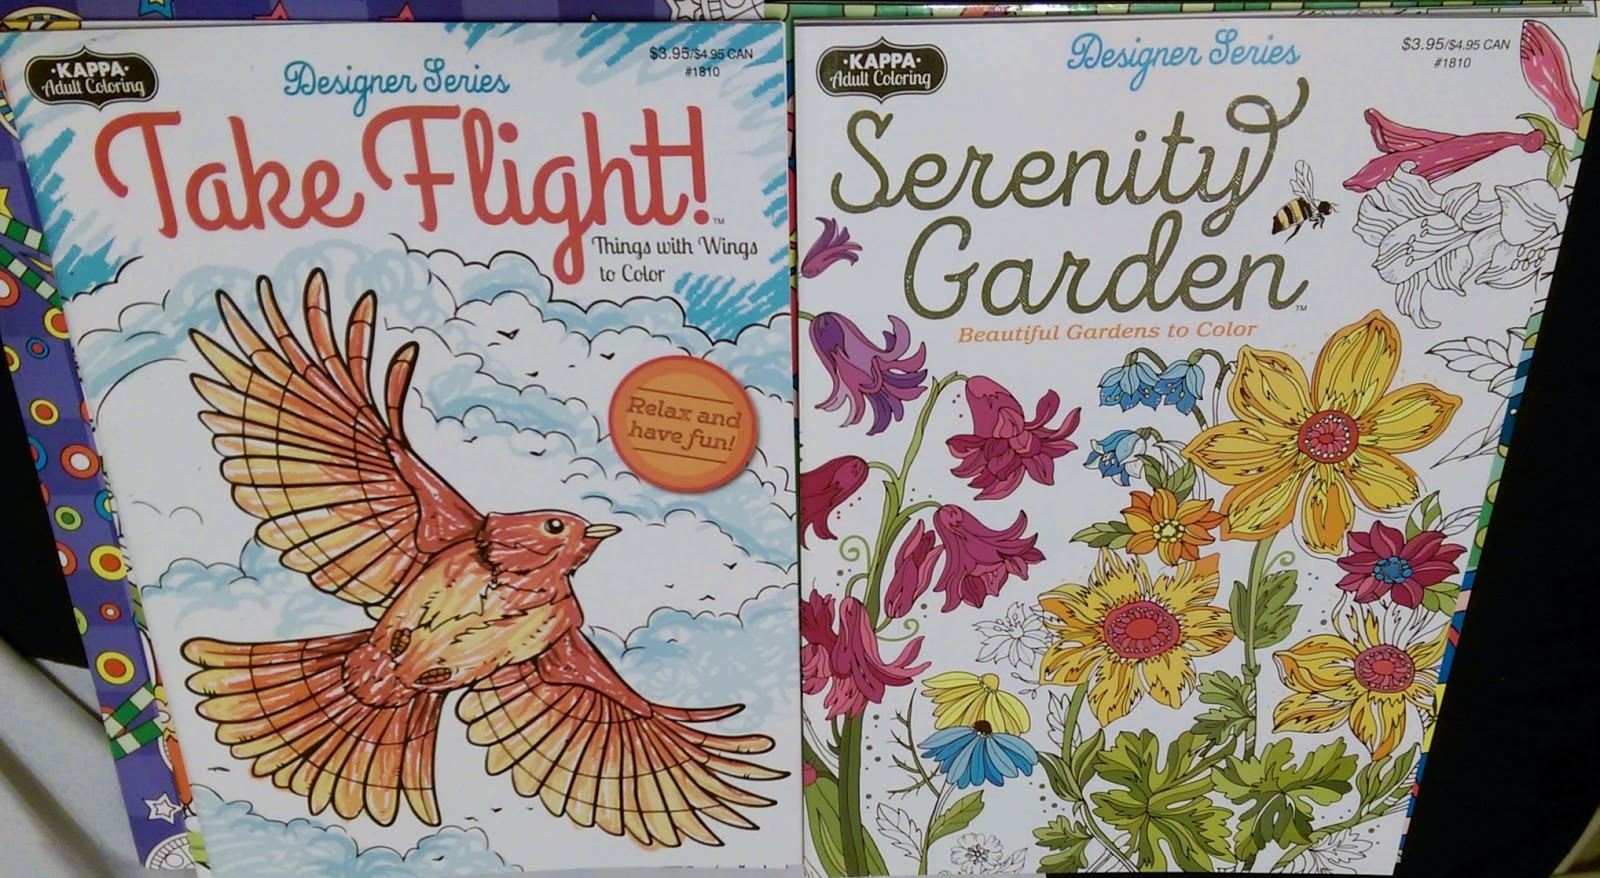 take flight and serenity garden coloring books for adults at dollar tree - Dollar Tree Coloring Books